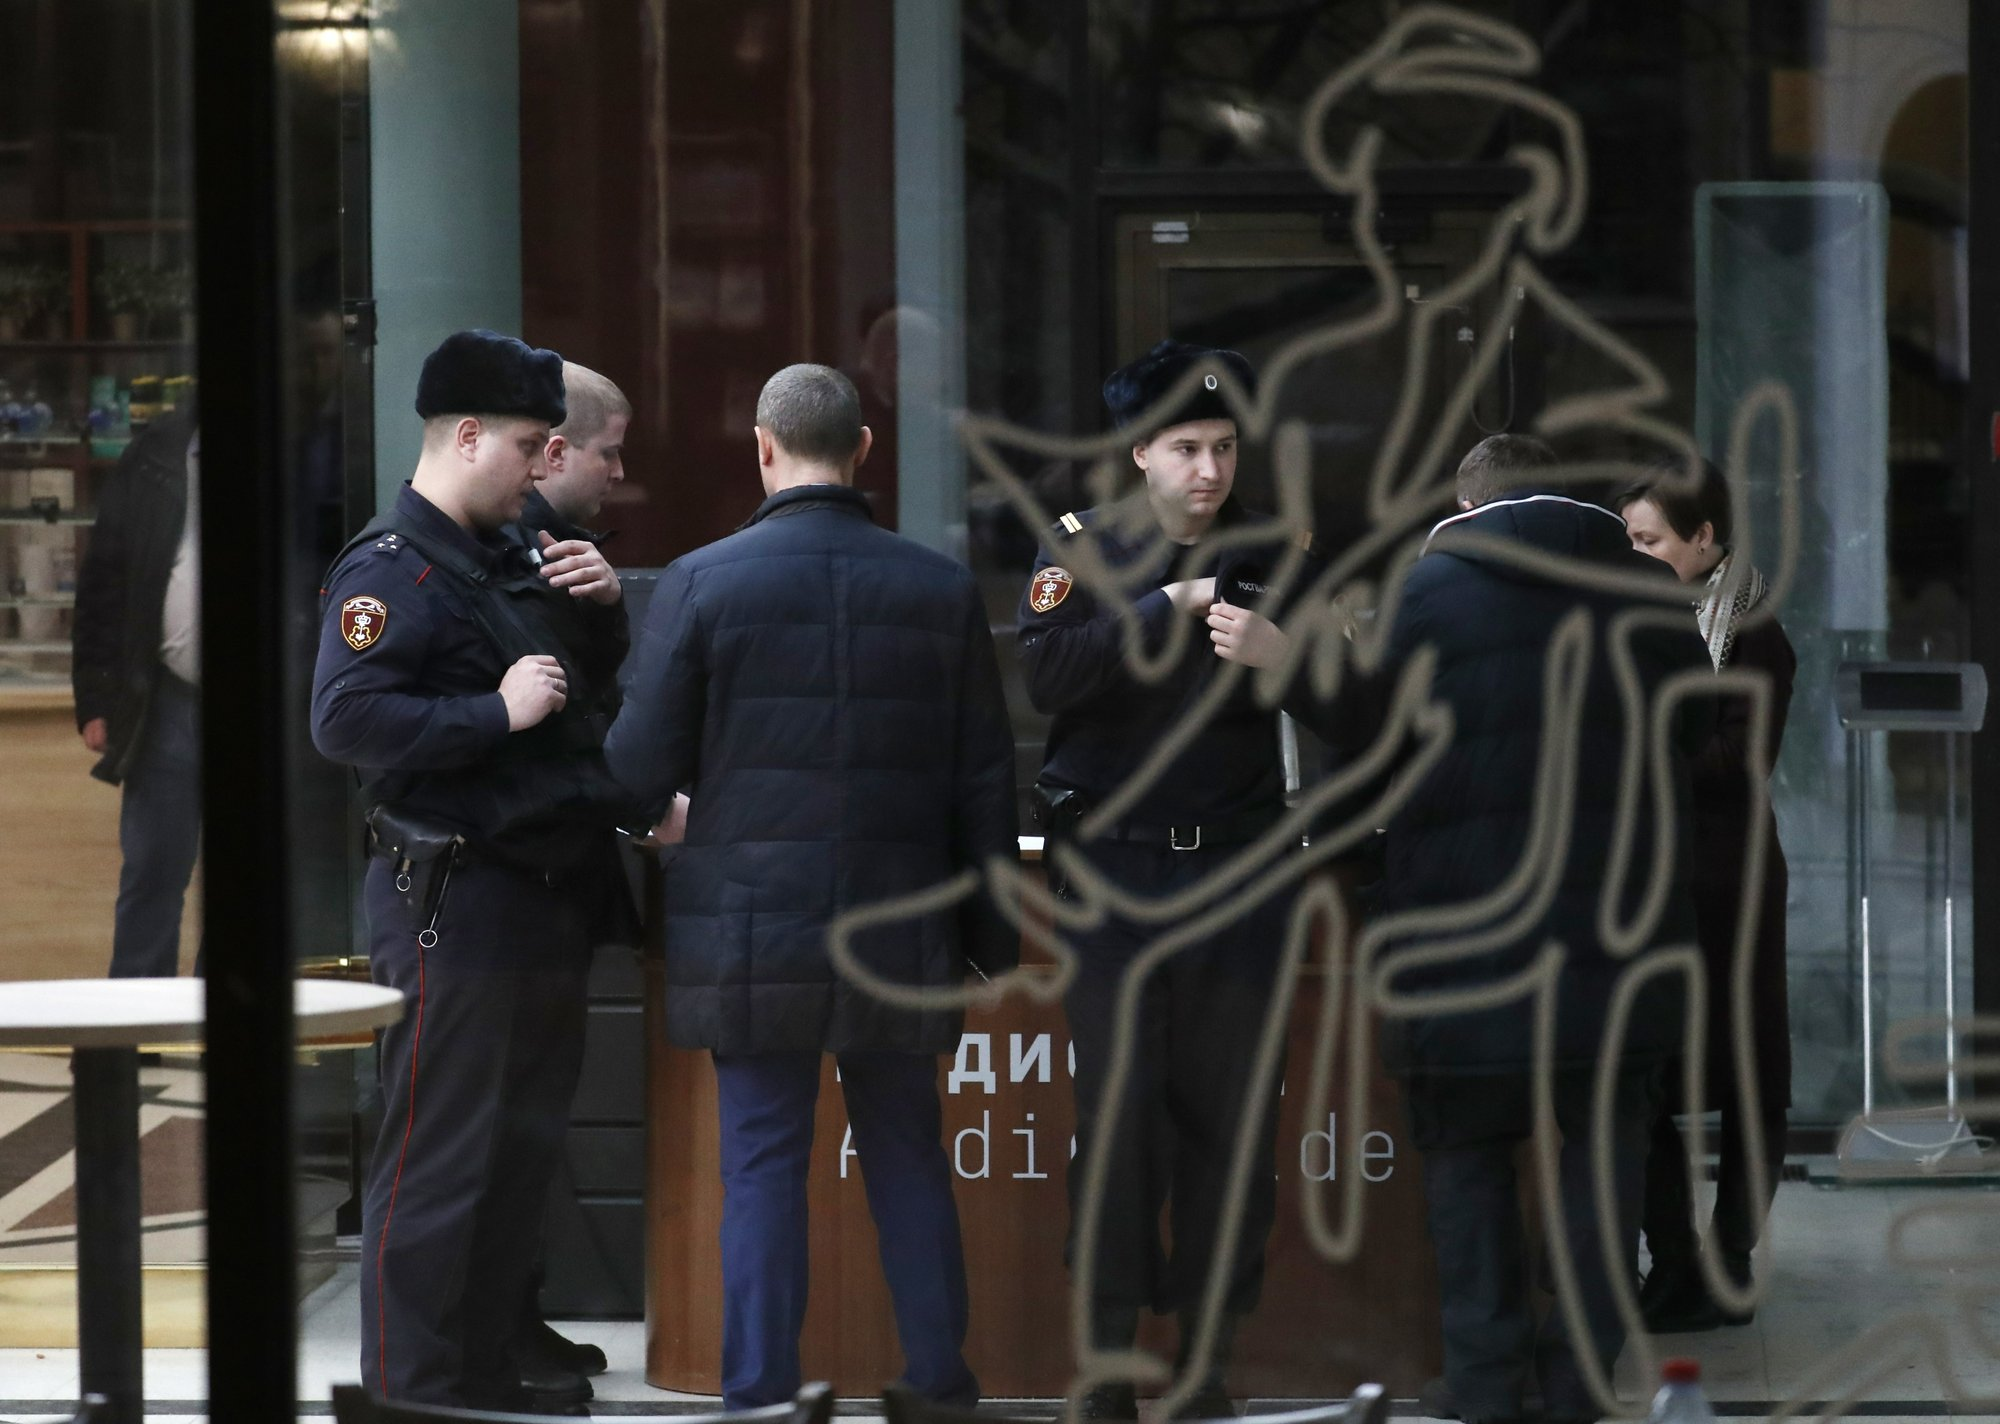 Painting stolen from Moscow gallery as witnesses watch